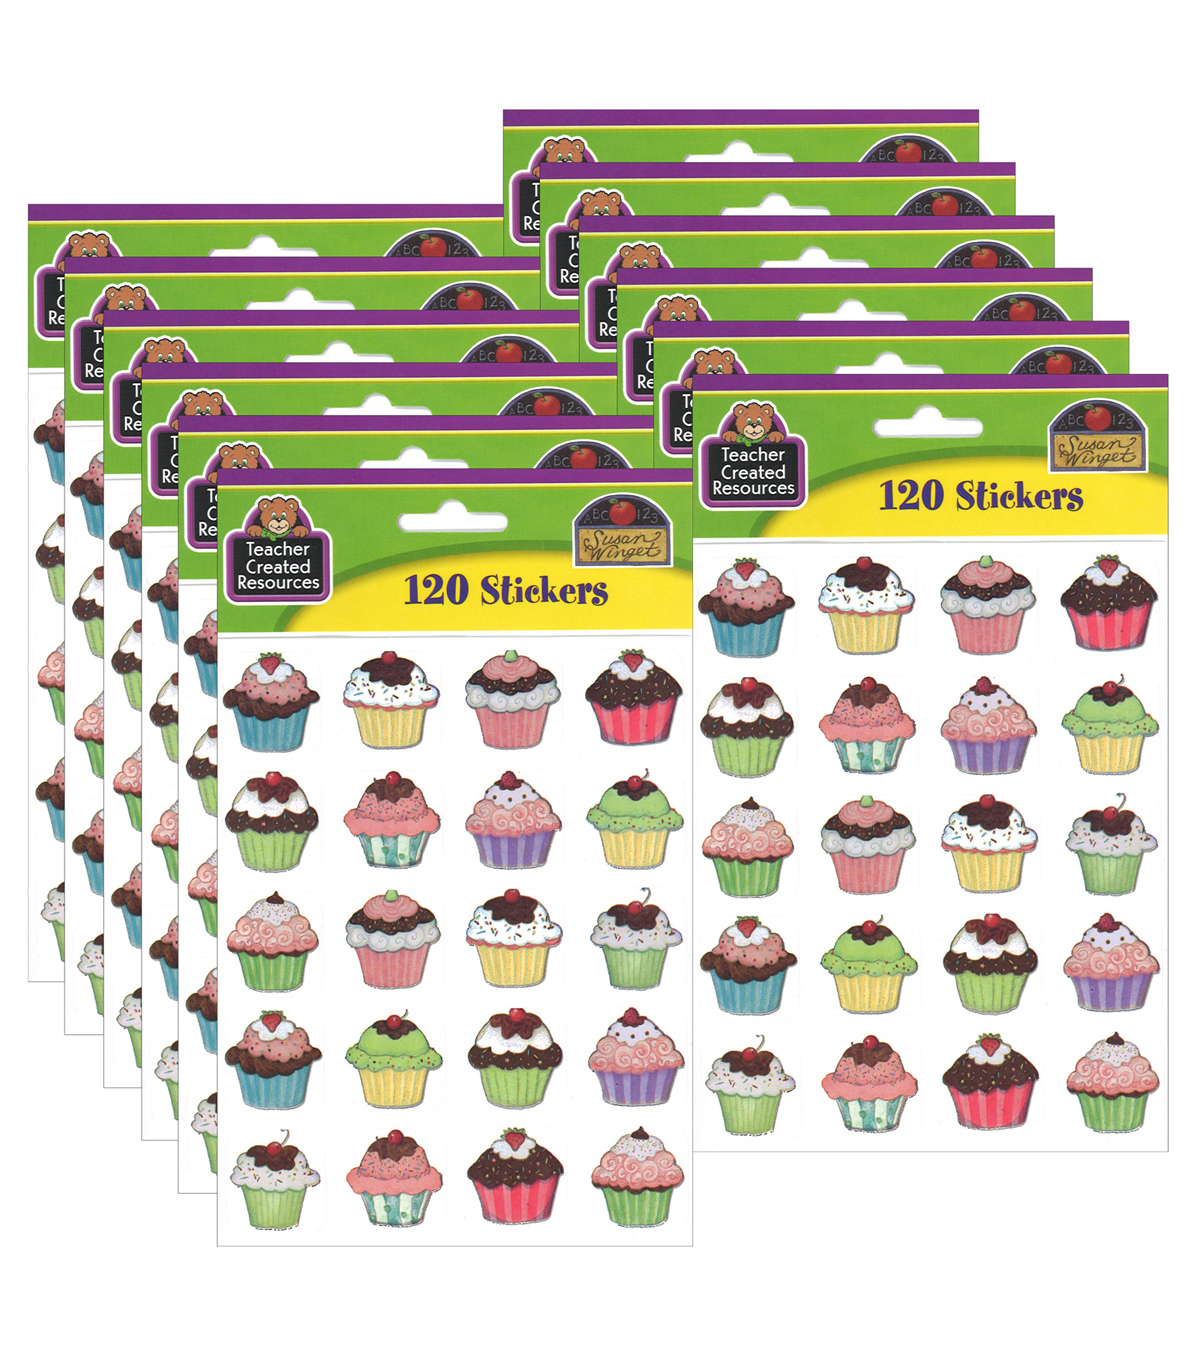 Teacher Created Resources Cupcakes Stickers 12 Packs